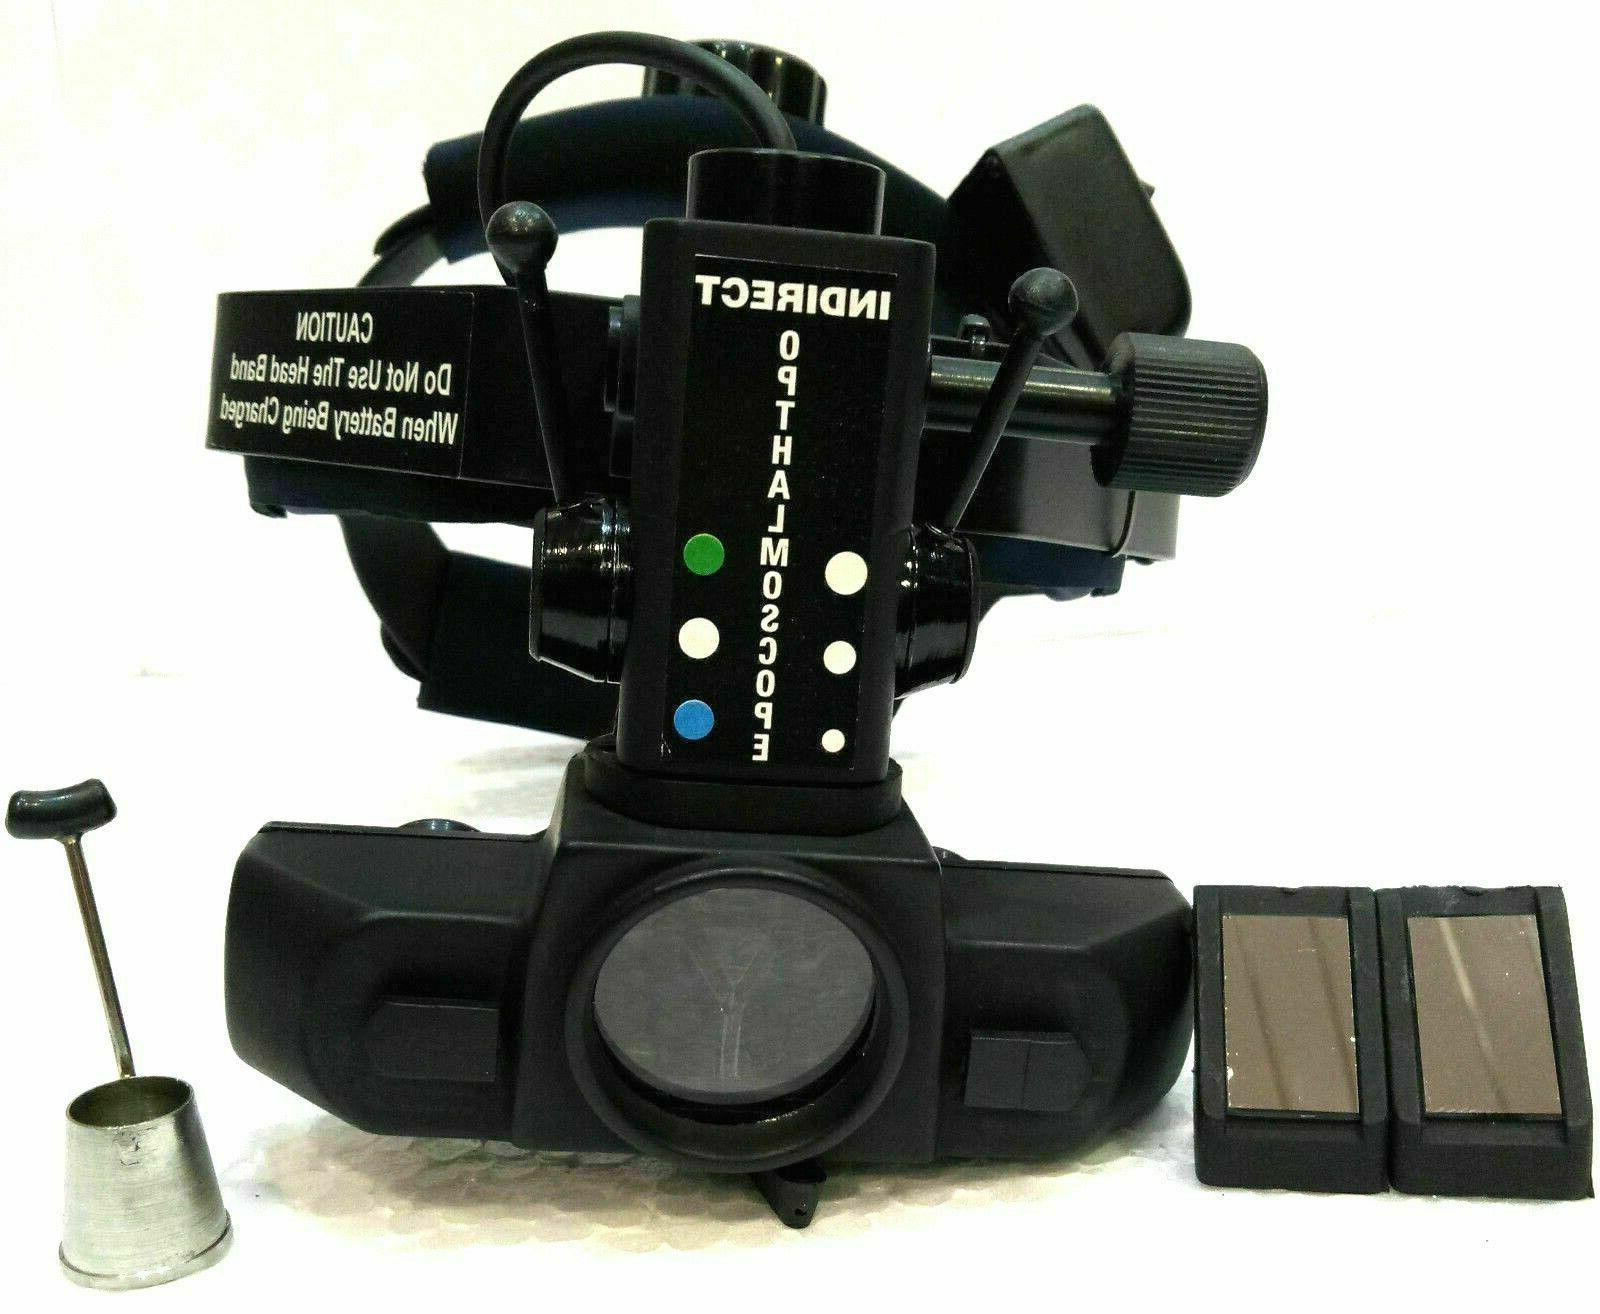 indirect ophthalmoscope with carry bag and other